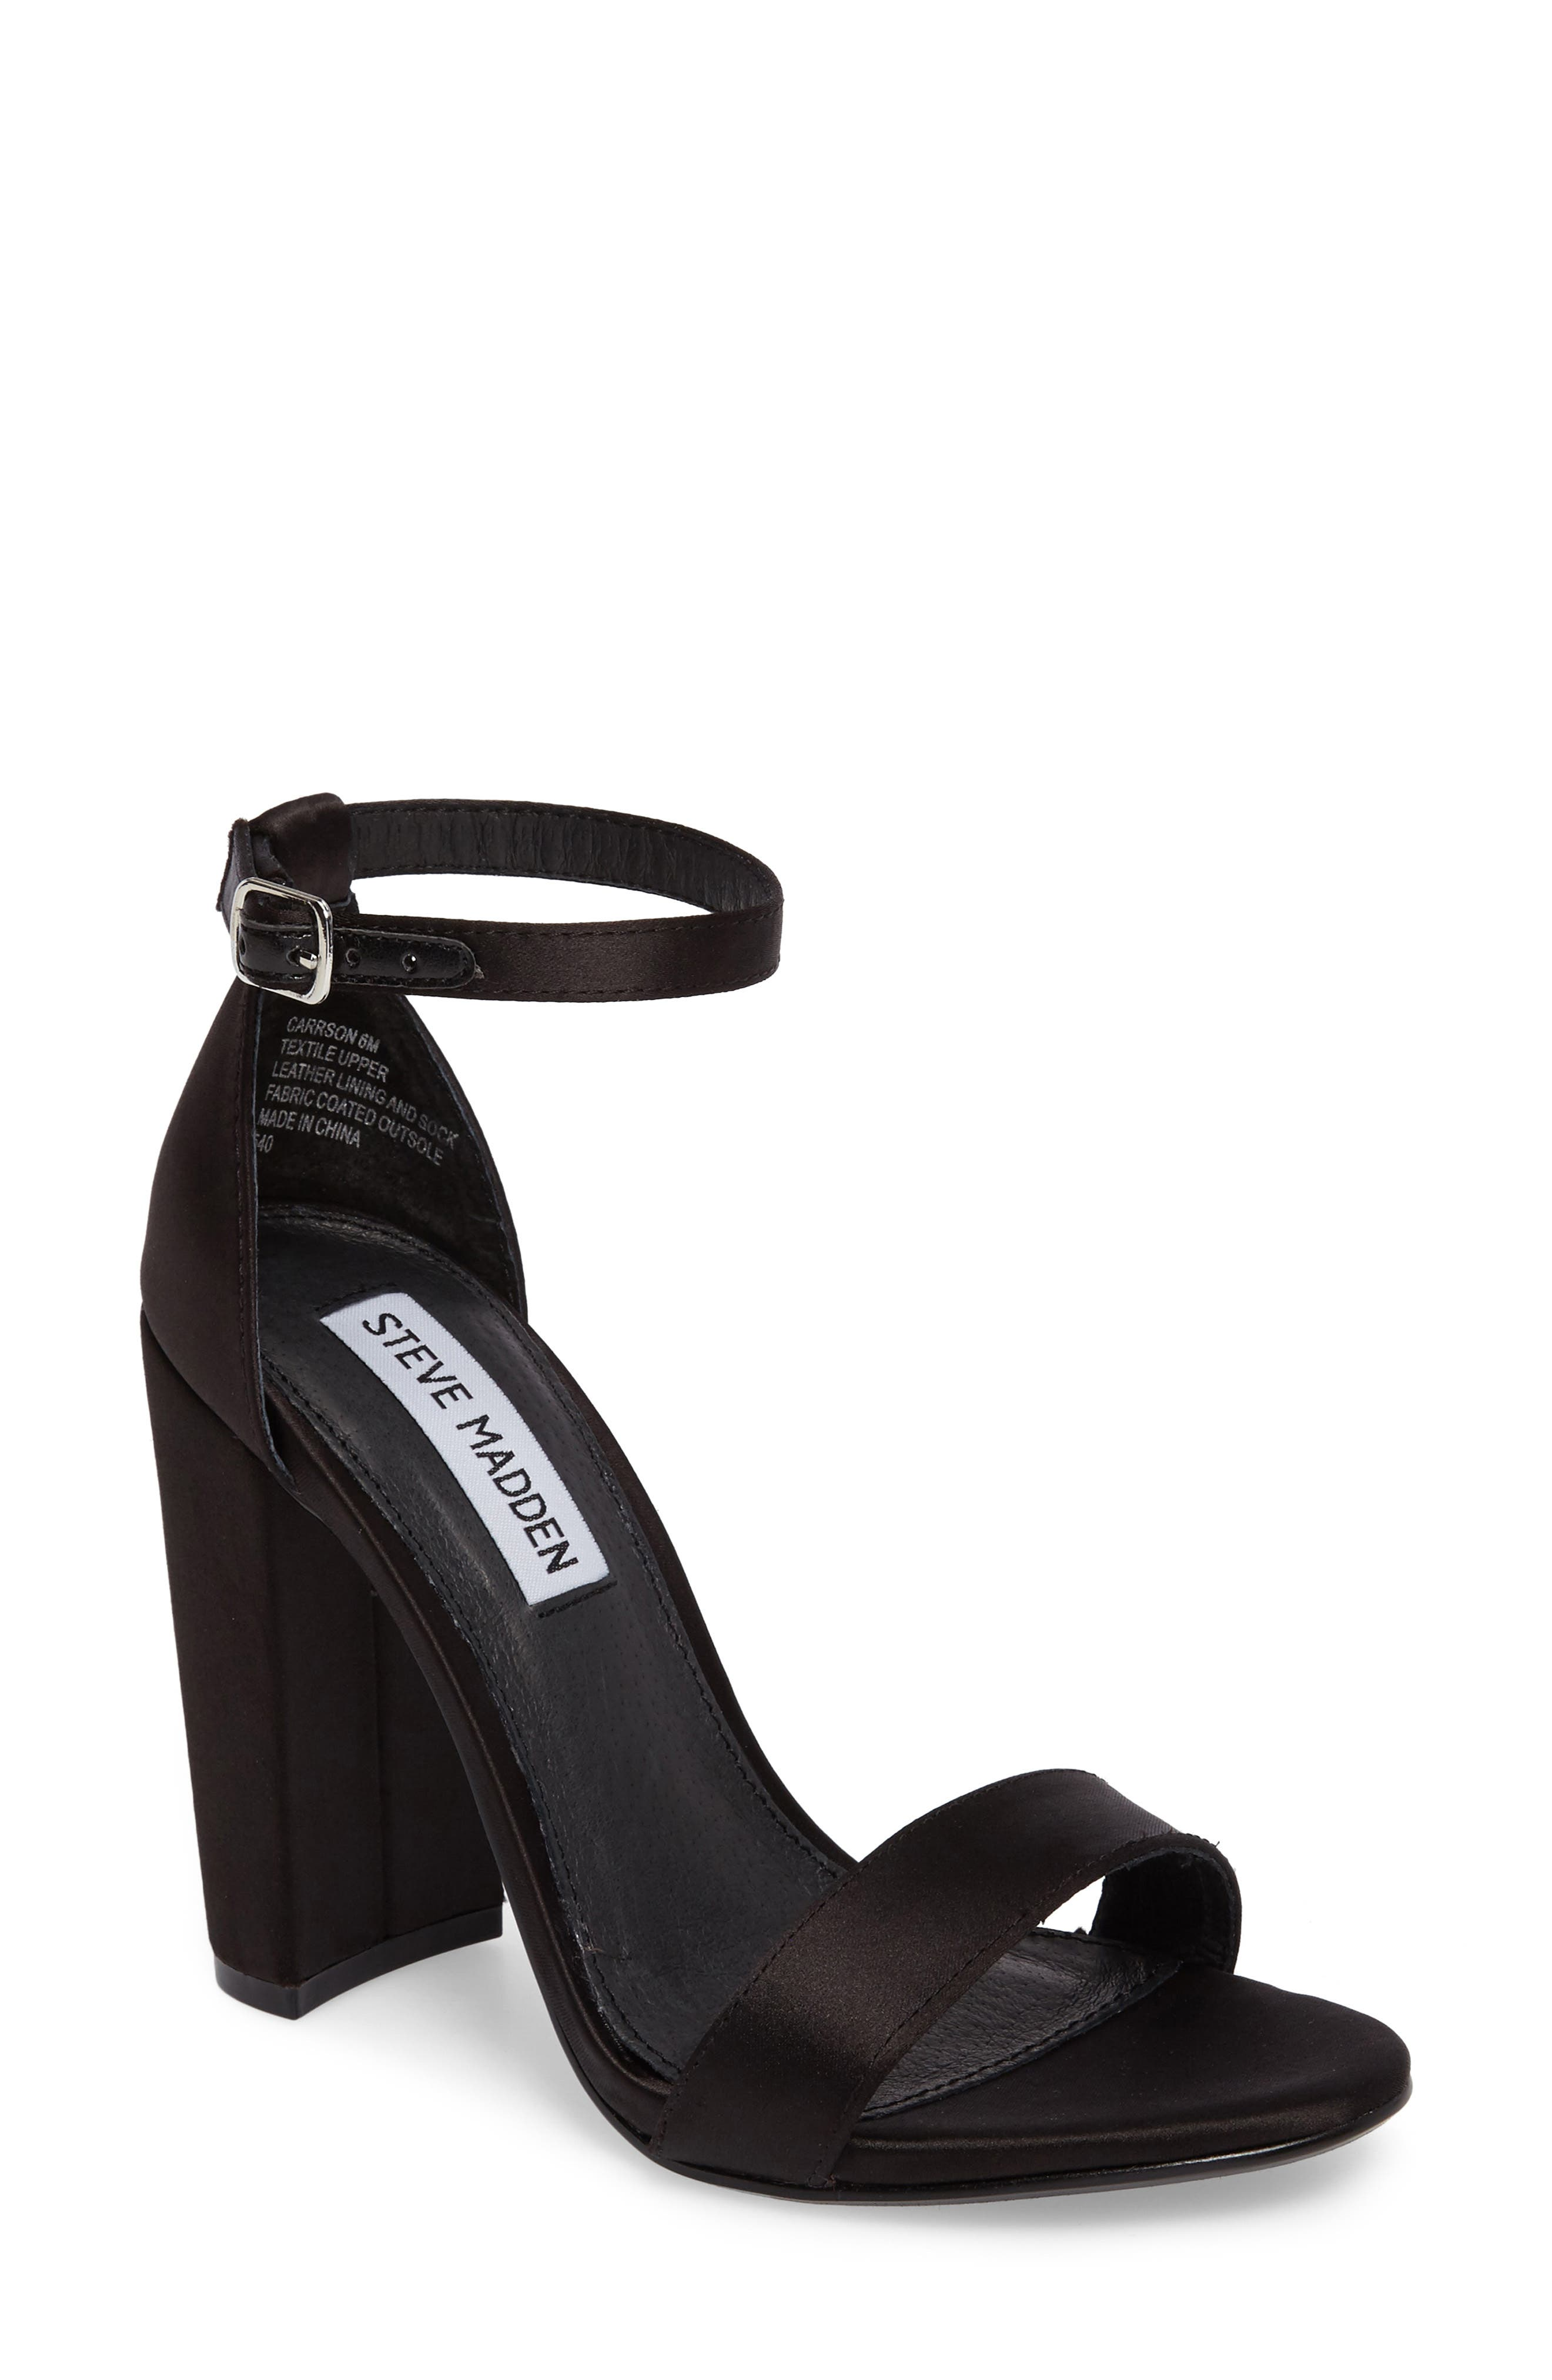 Alternate Image 1 Selected - Steve Madden Carrson Sandal (Women)